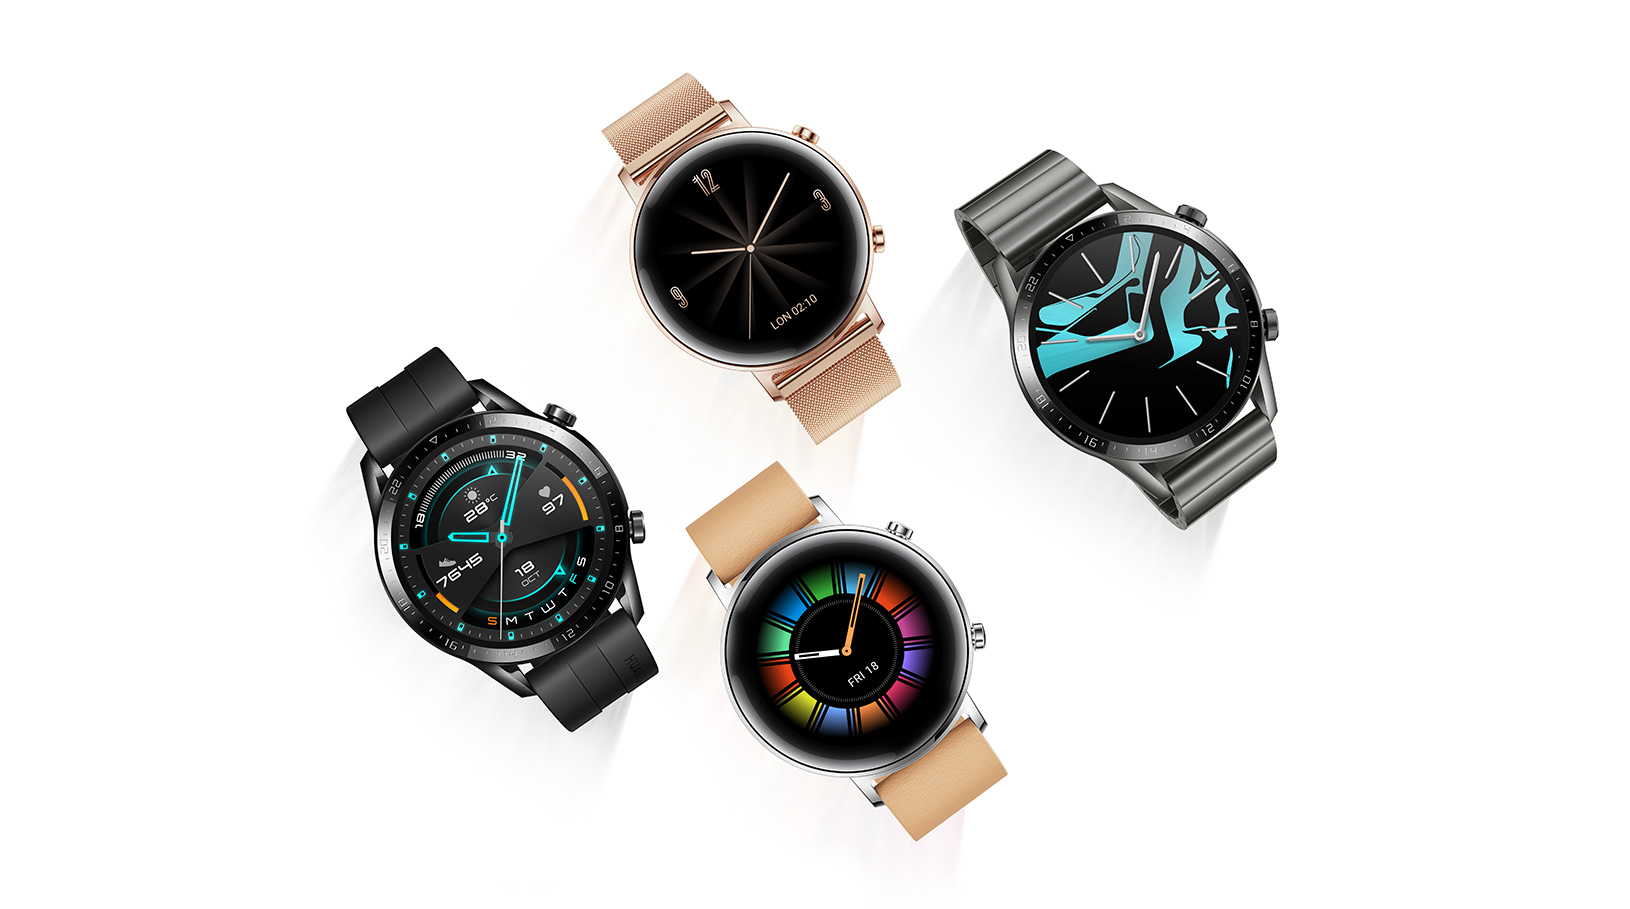 Huawei's Watch GT 2 comes with a bit more functionality